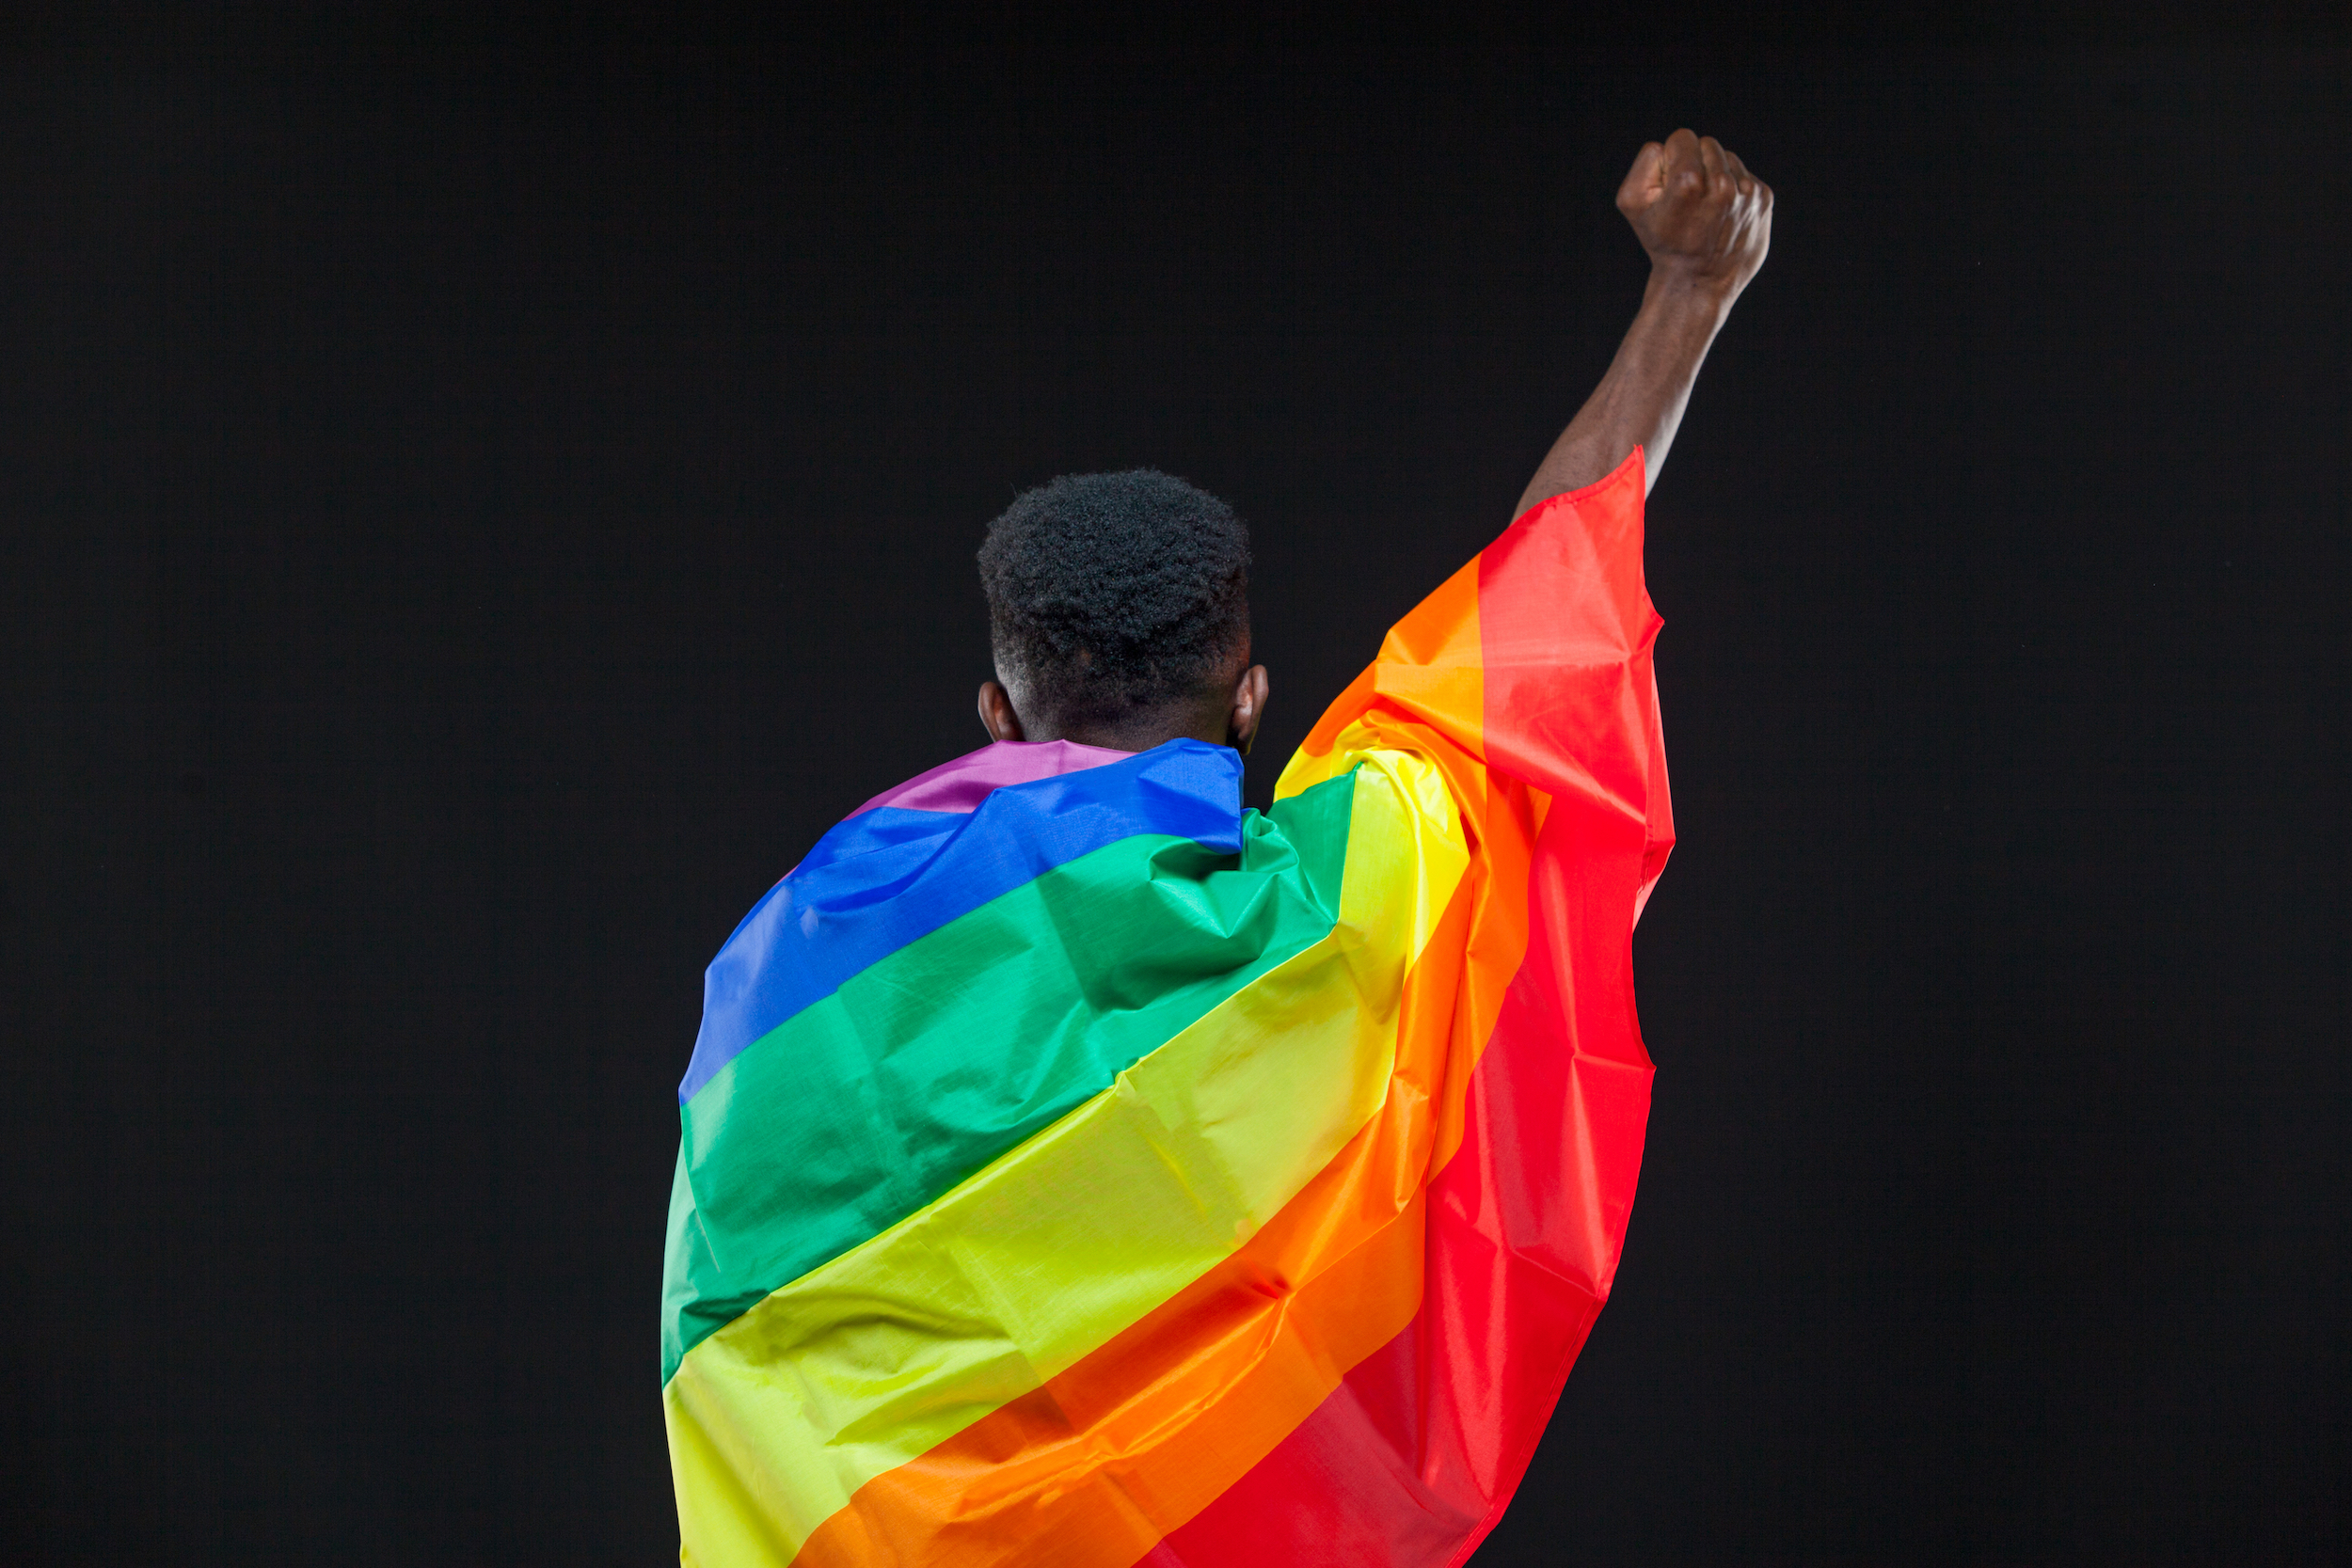 Back view of young african american man wrapped in a rainbow flag standing with raised fist isolated on black background.